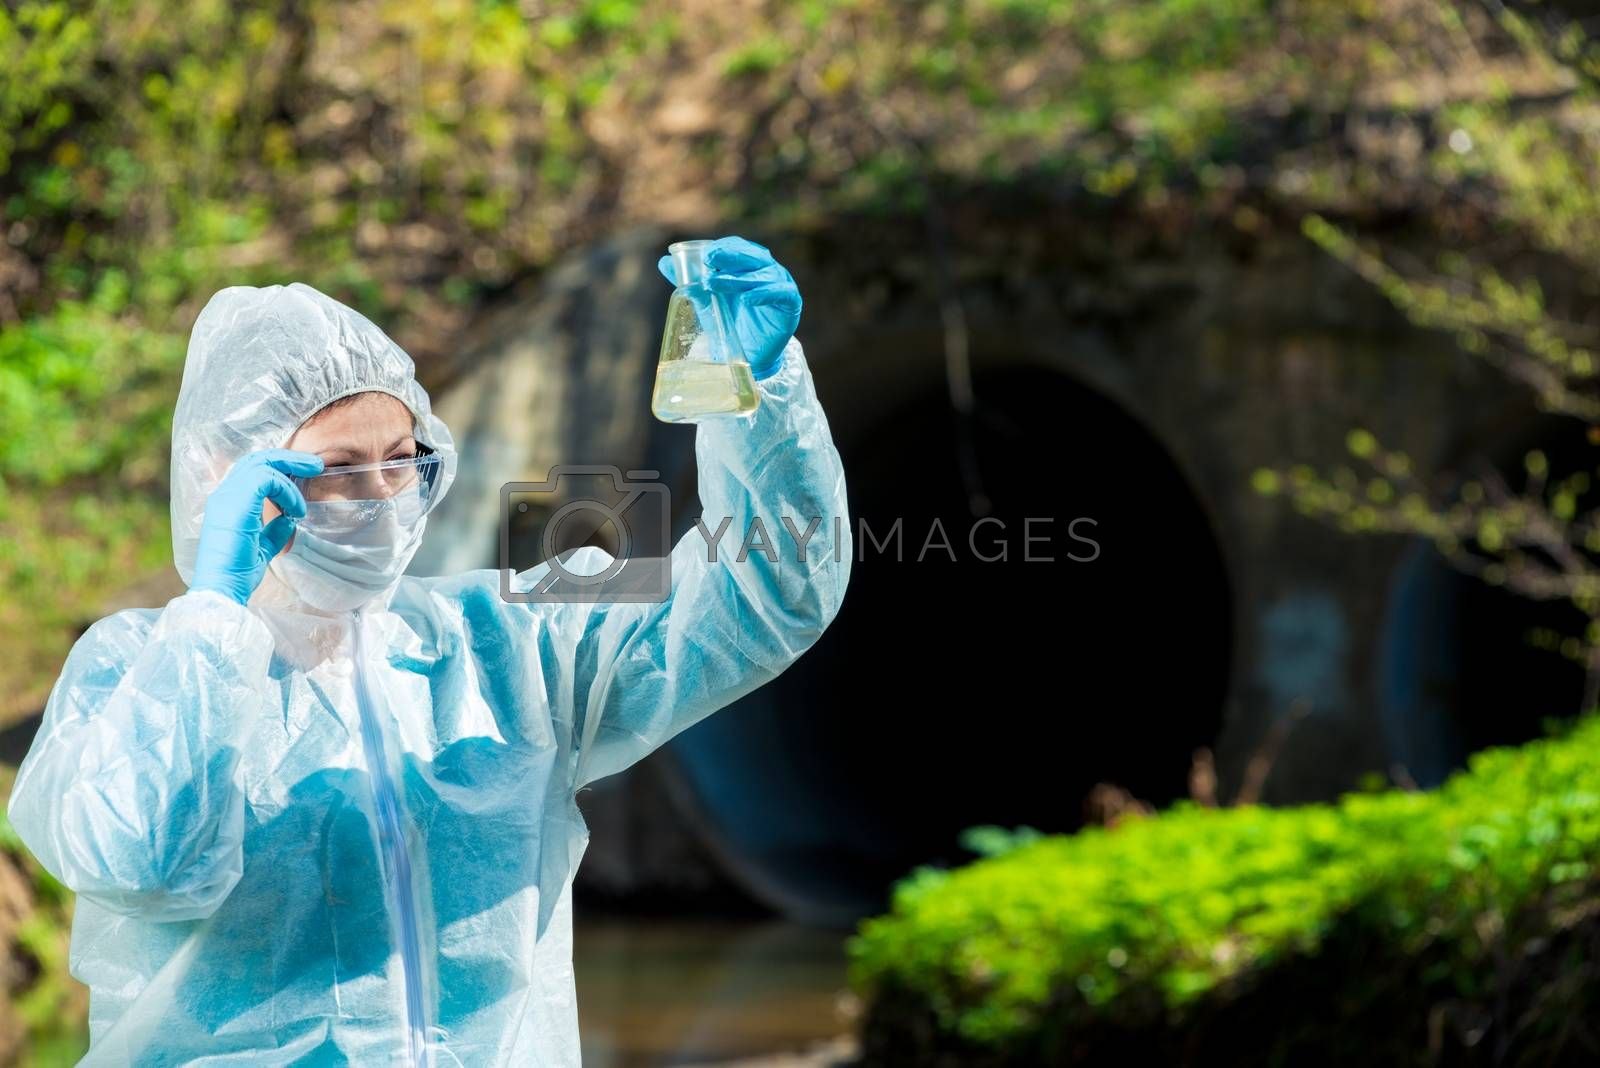 Ecologist explores the water from the river near the sewer